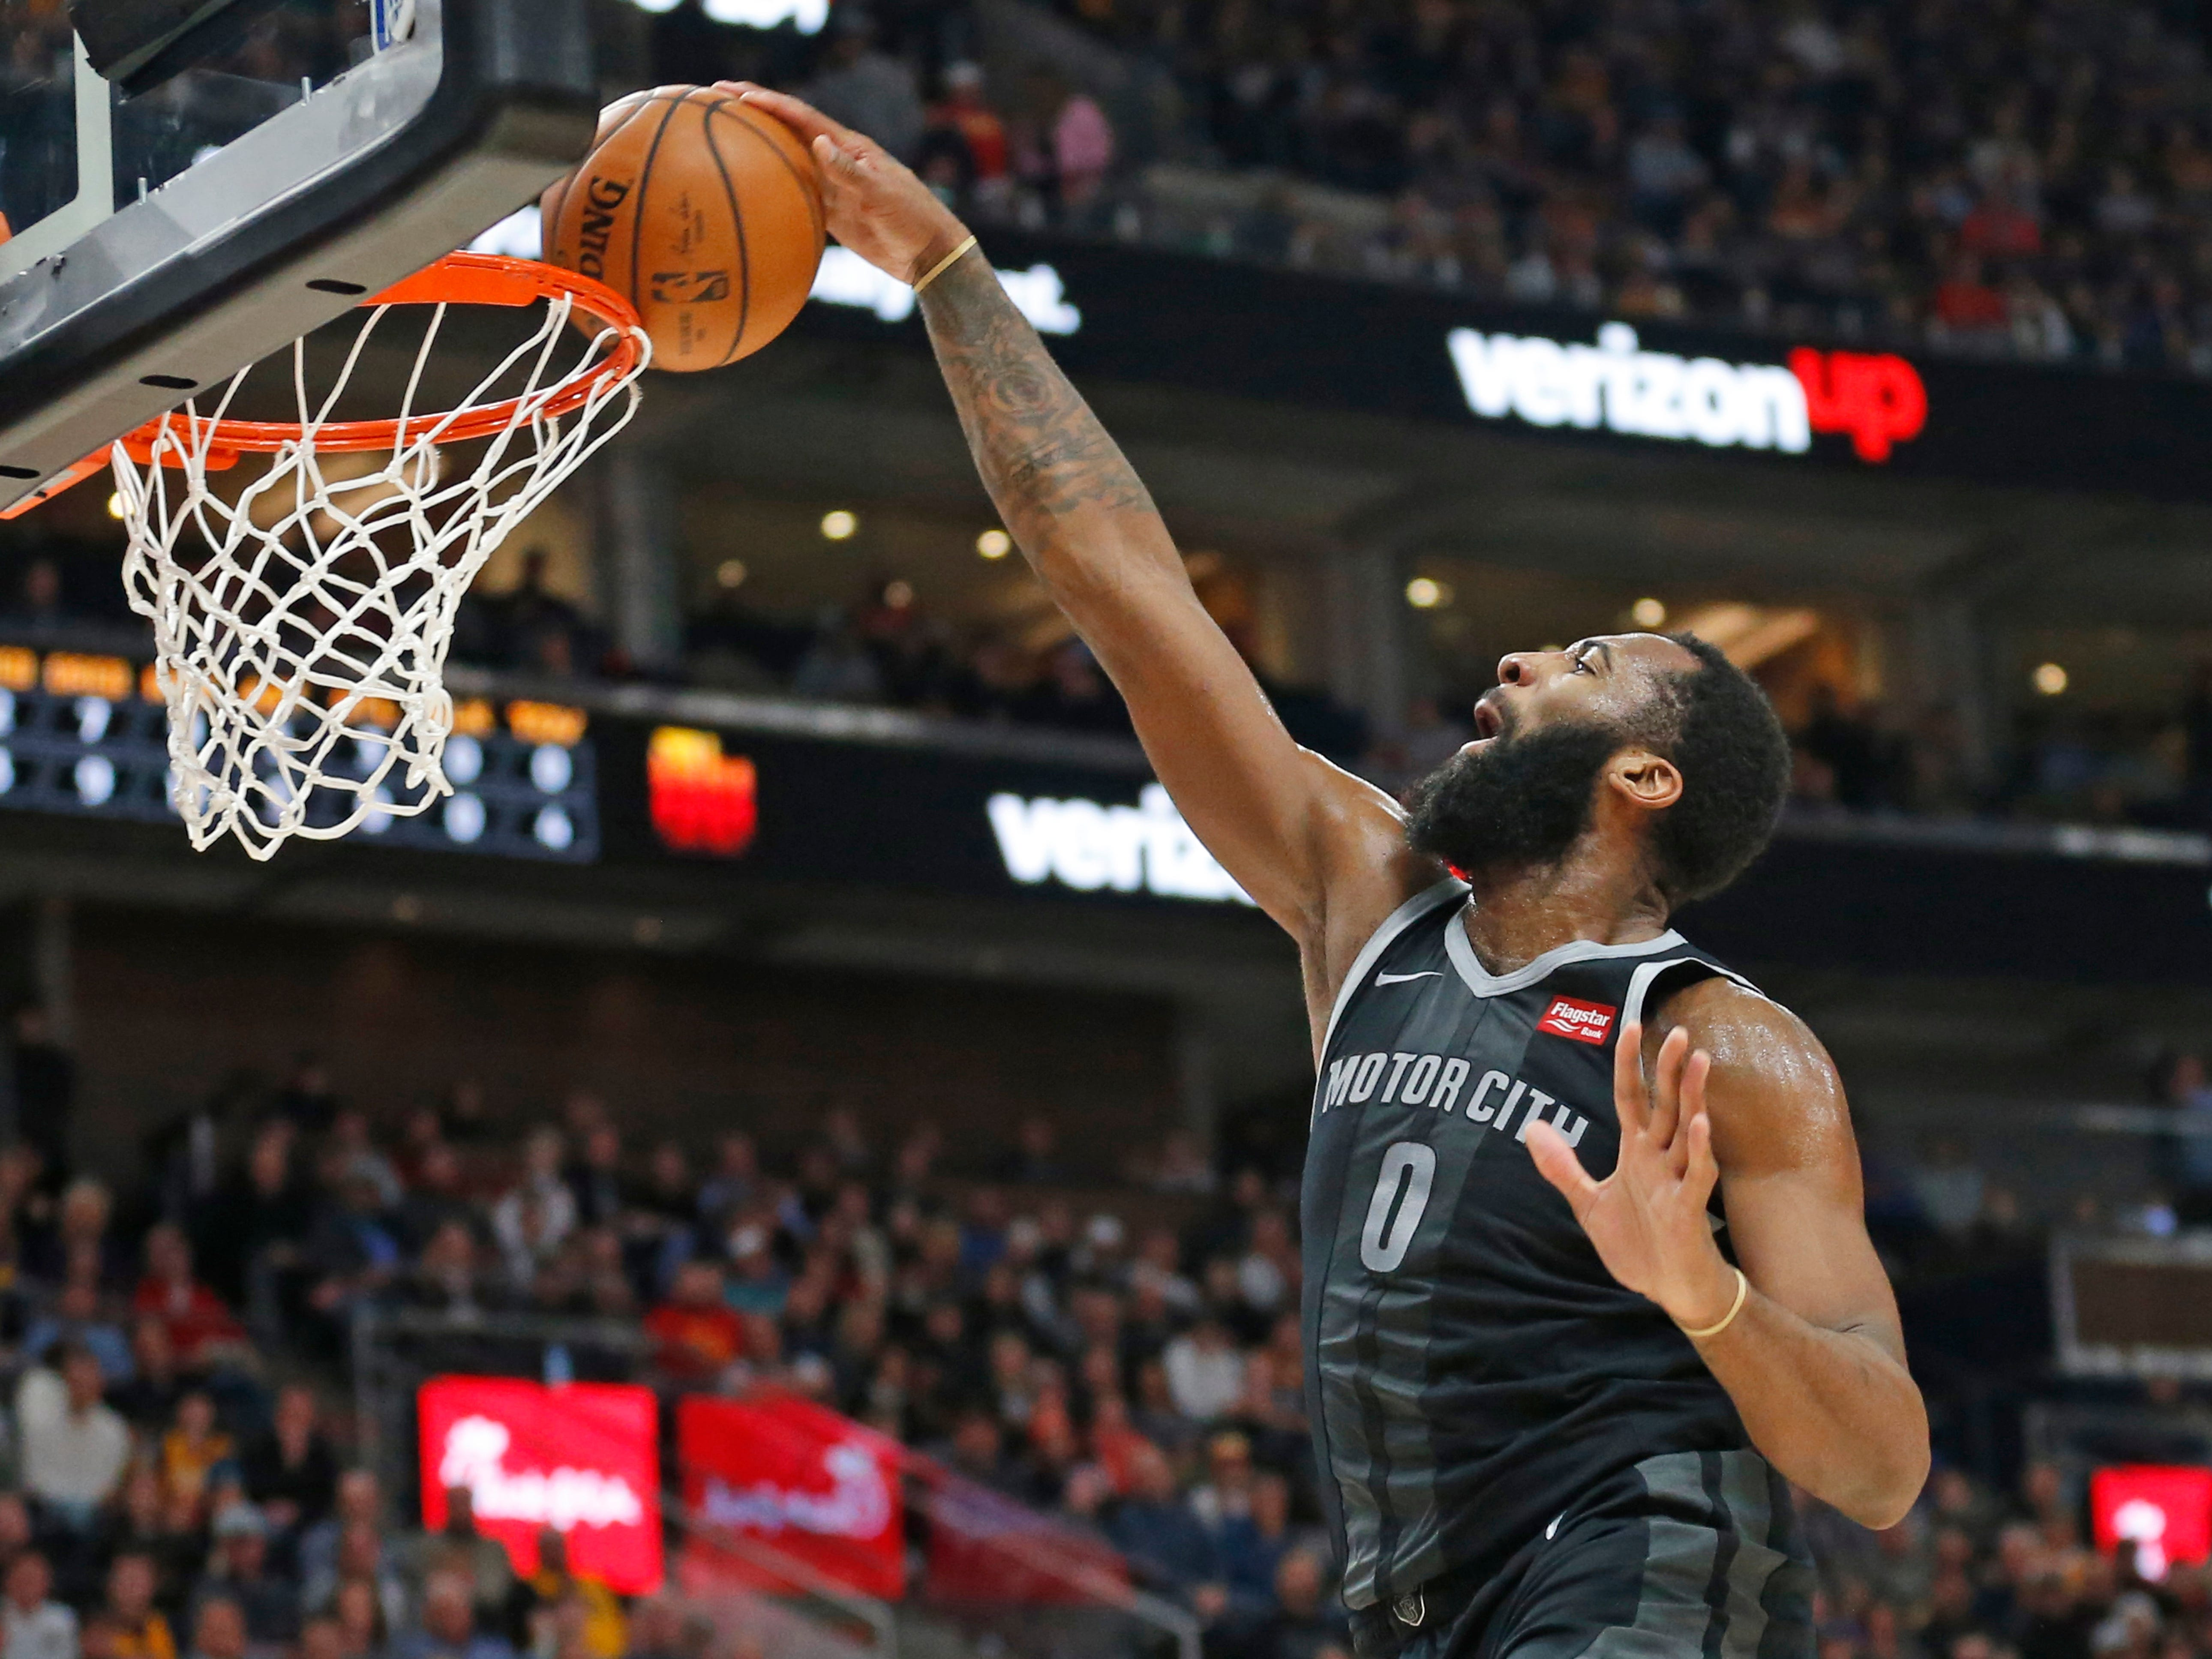 Detroit Pistons center Andre Drummond (0) dunks against the Utah Jazz during the first half.